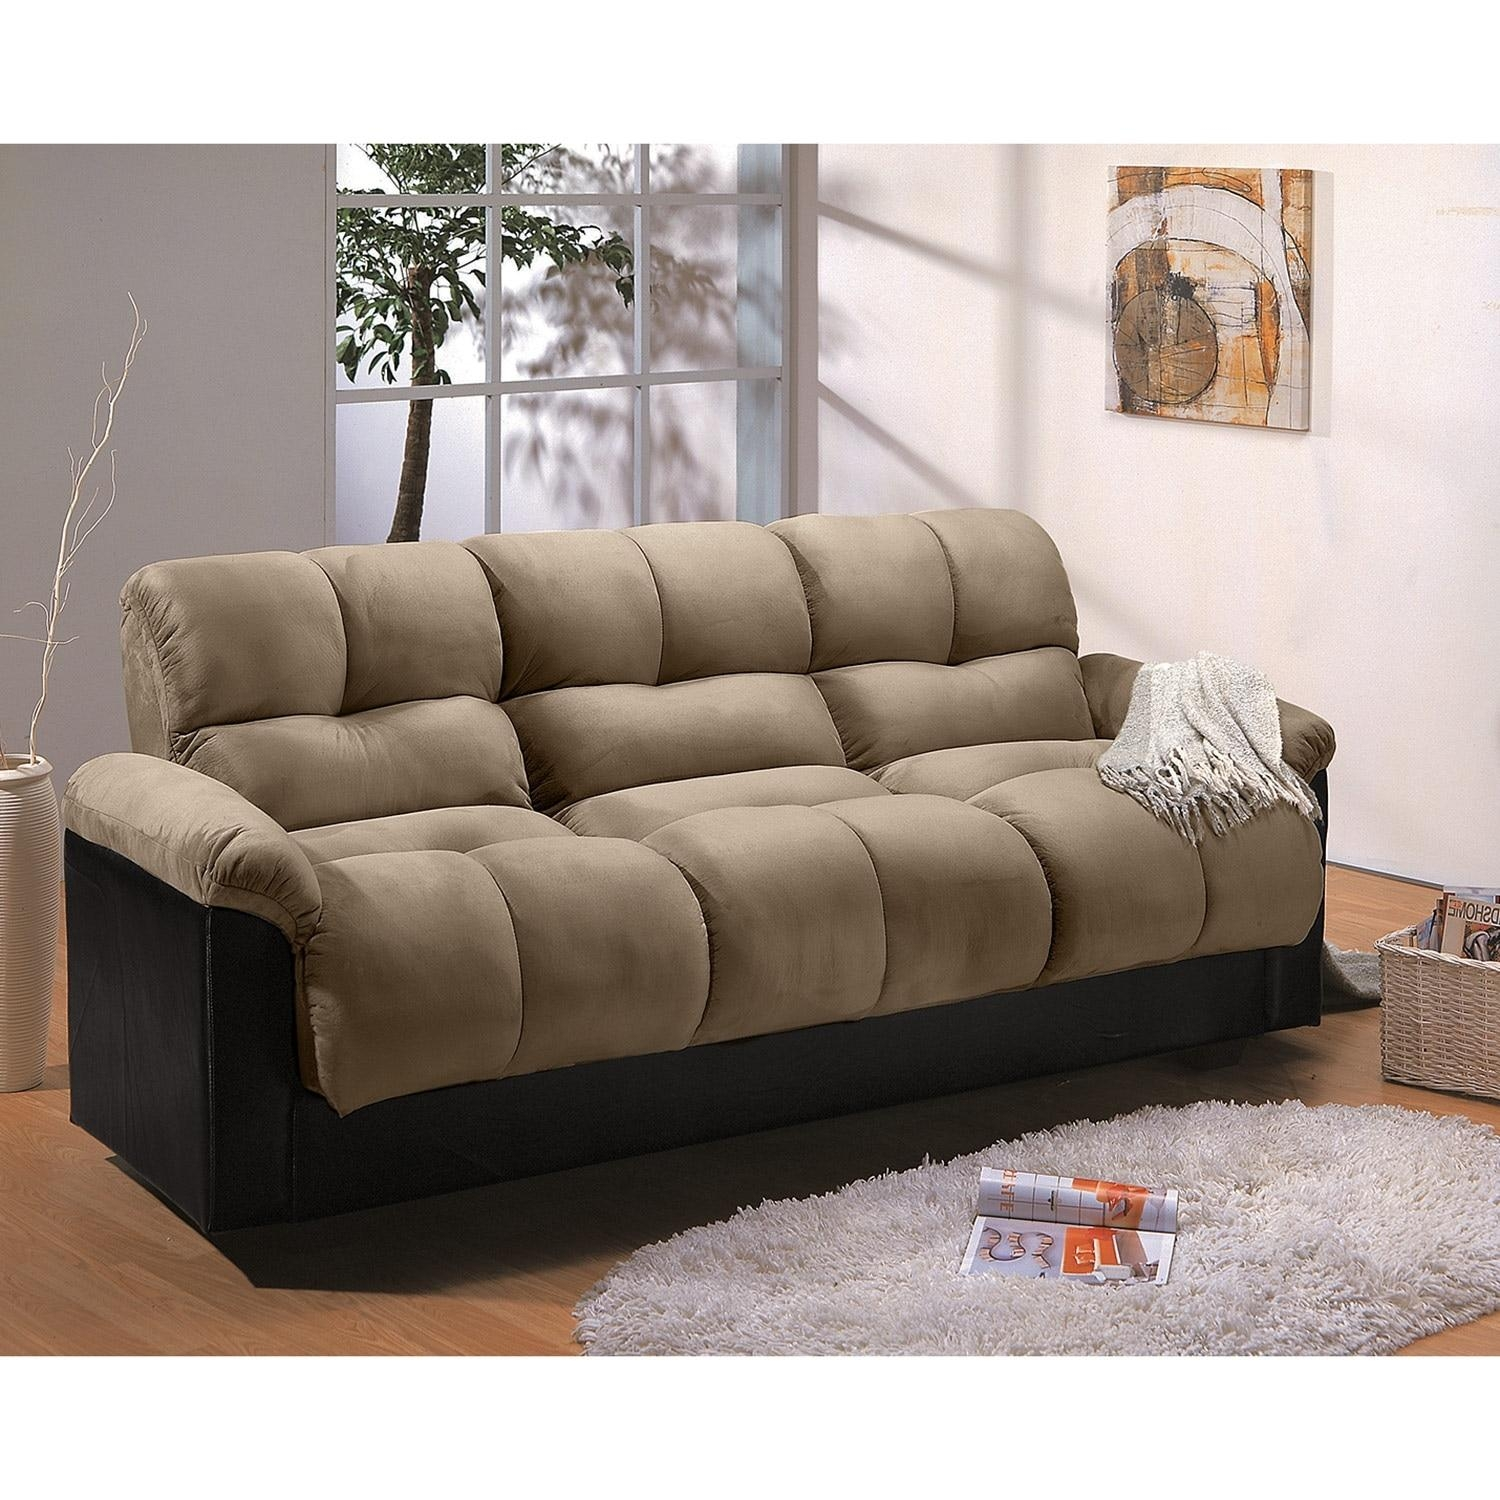 Ara Futon Sofa Bed With Storage – Hazelnut | American Signature With Regard To Fulton Sofa Beds (Image 1 of 21)